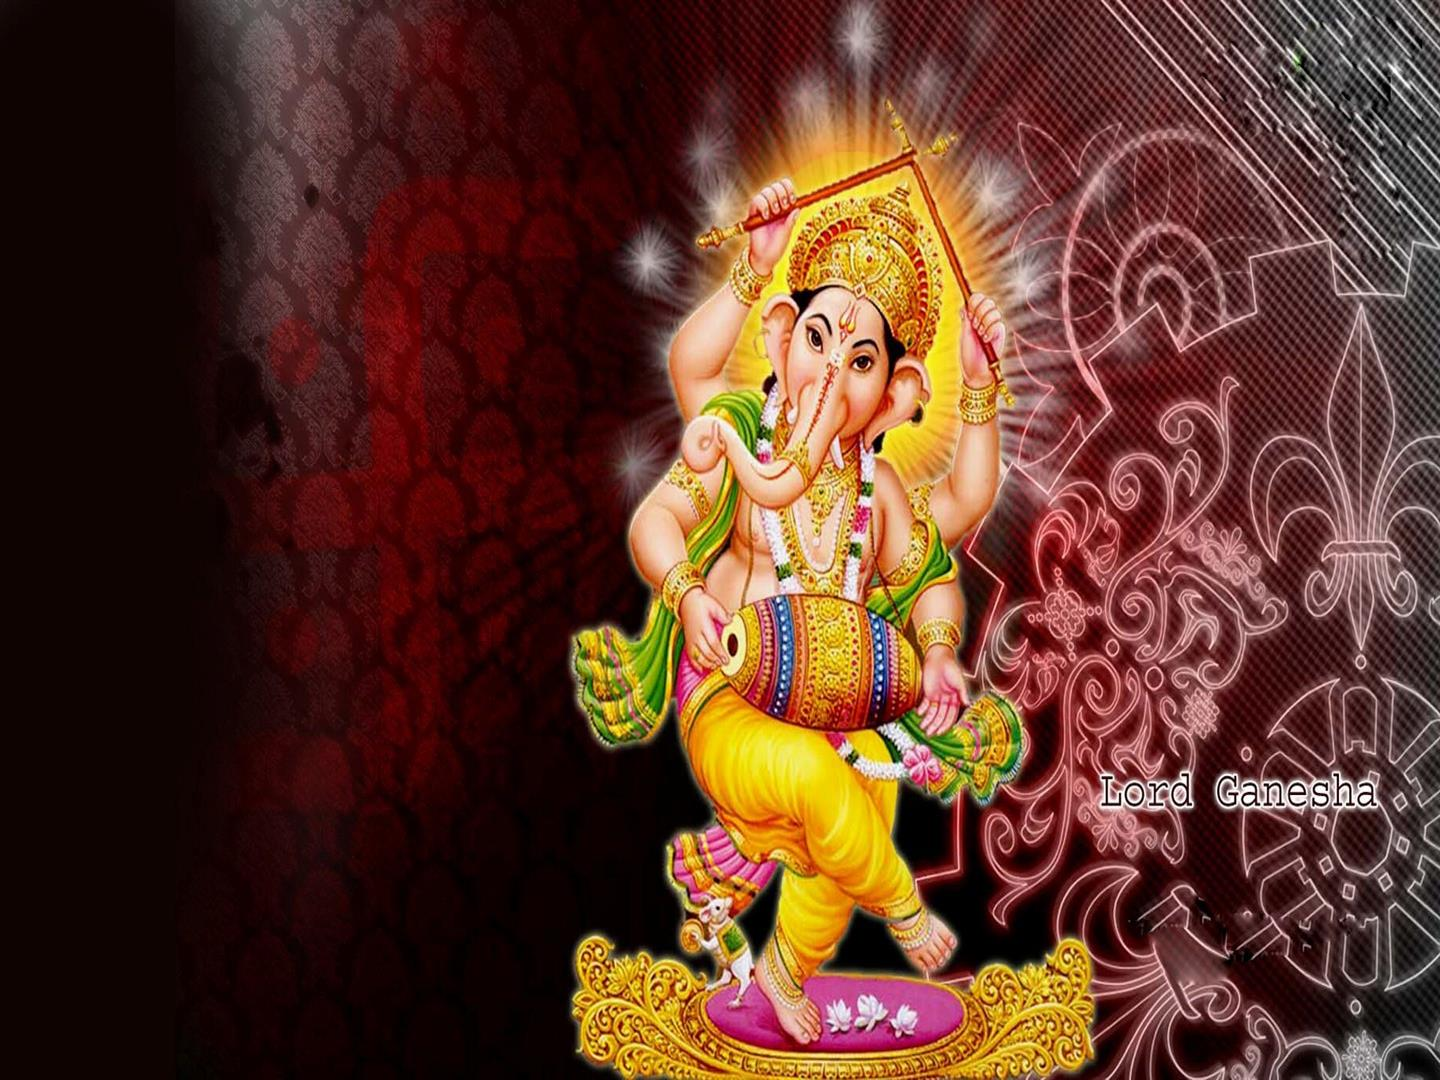 1440x1080 Lord Ganesha Indian God HD Desktop Wallpapers